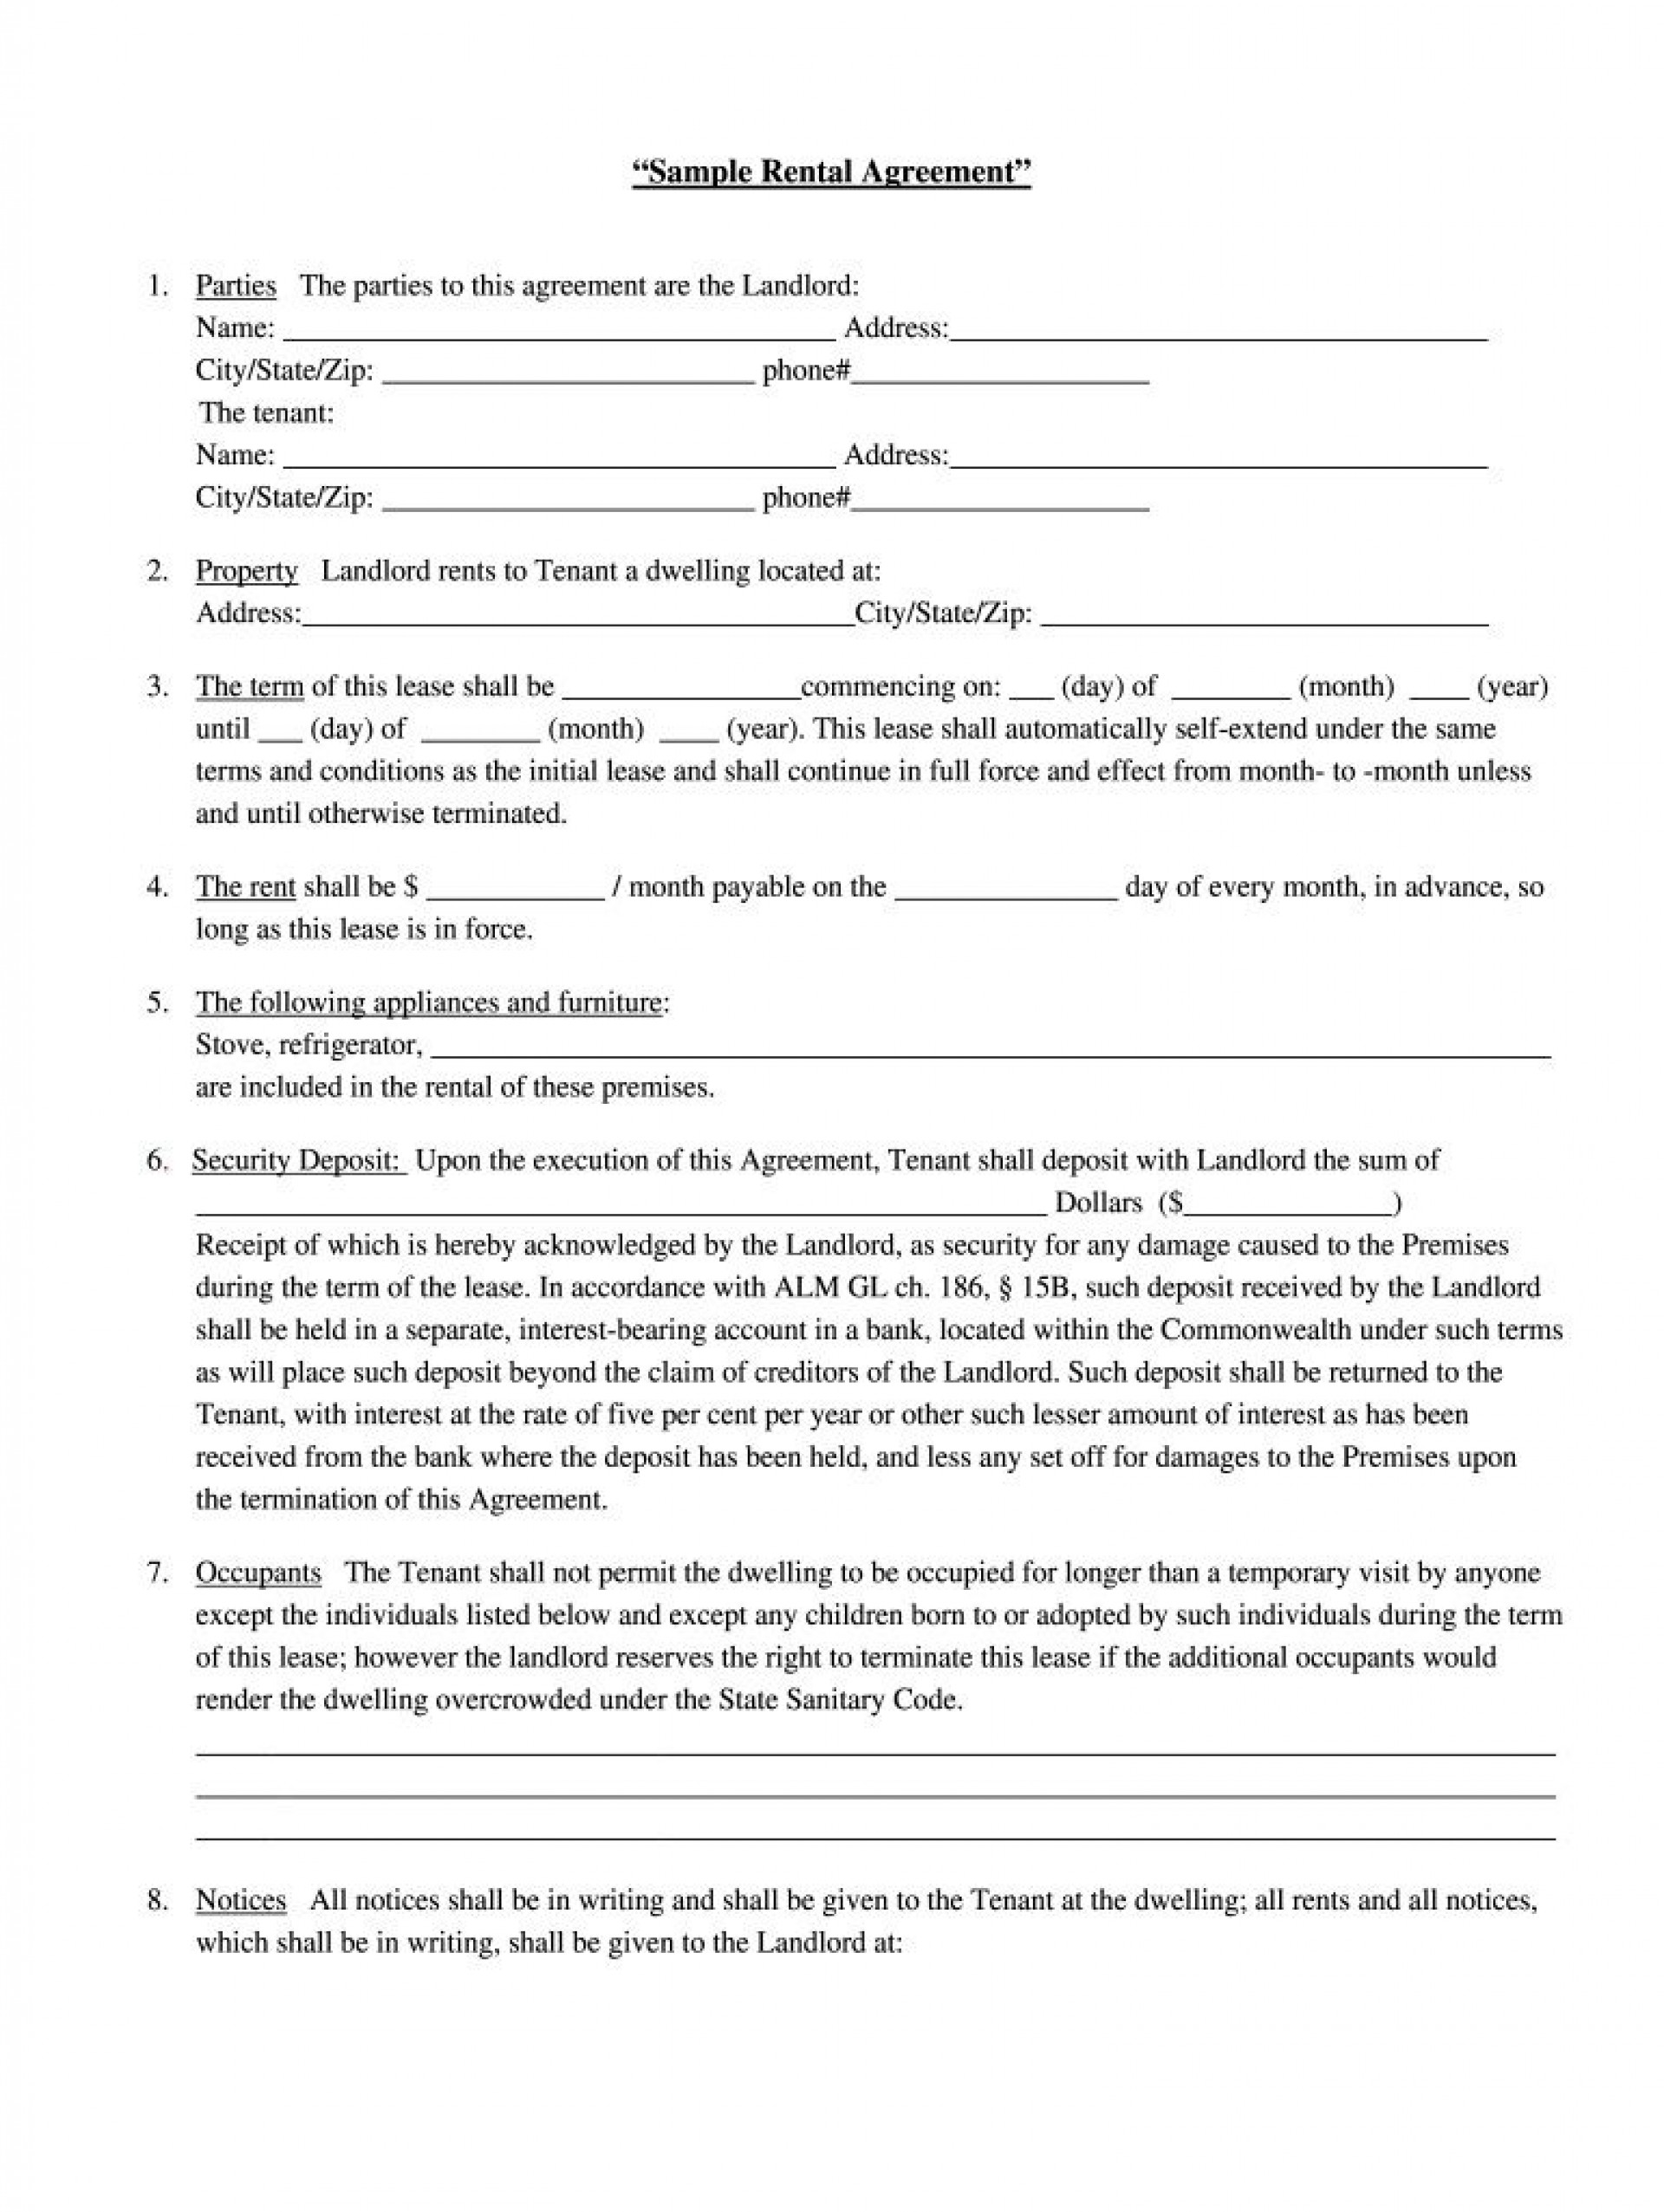 008 Fantastic Rental Agreement Template Free Picture  Lease Format Bangalore Download Word South Africa Room Doc1920